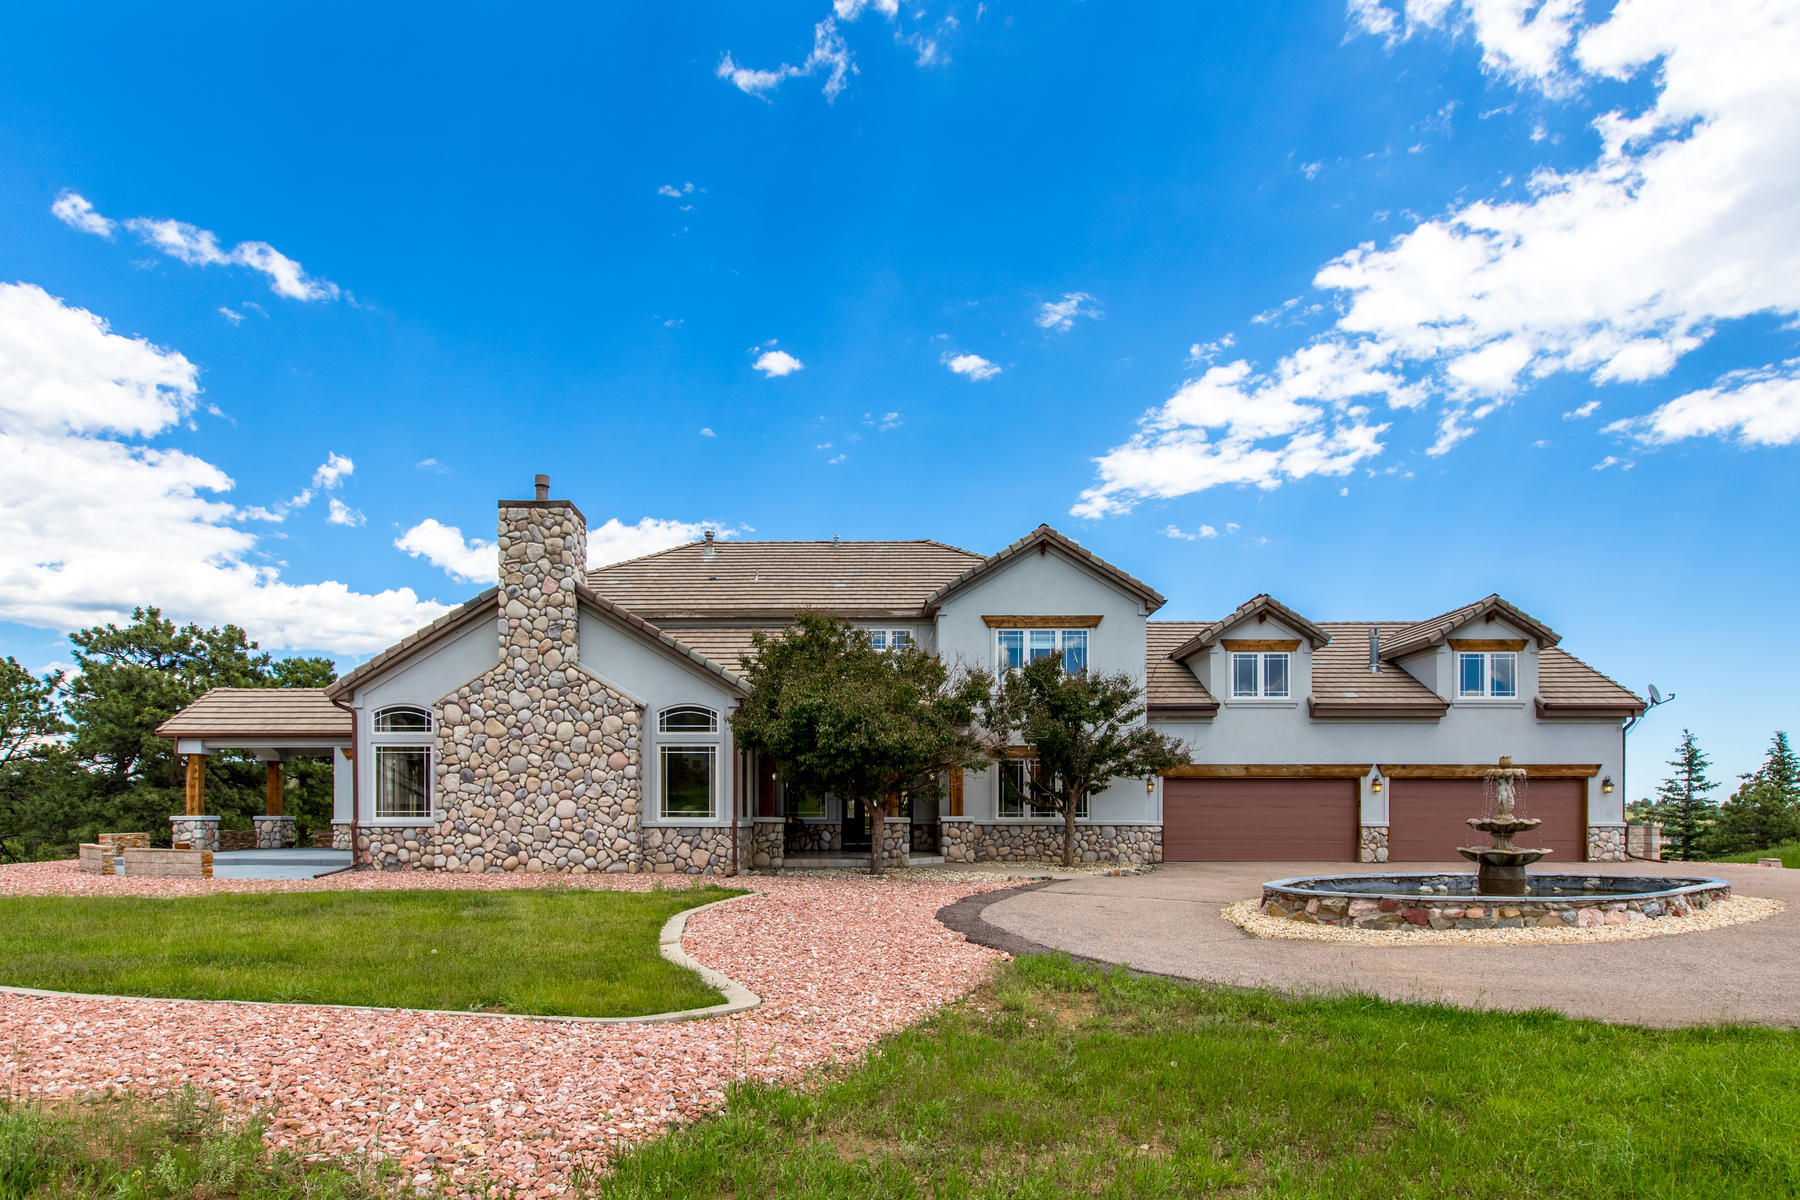 Single Family Homes for Sale at Executive Living with Mountain Ambiance in the Exclusive Riva Chase Community 829 Eastwood Drive Golden, Colorado 80401 United States